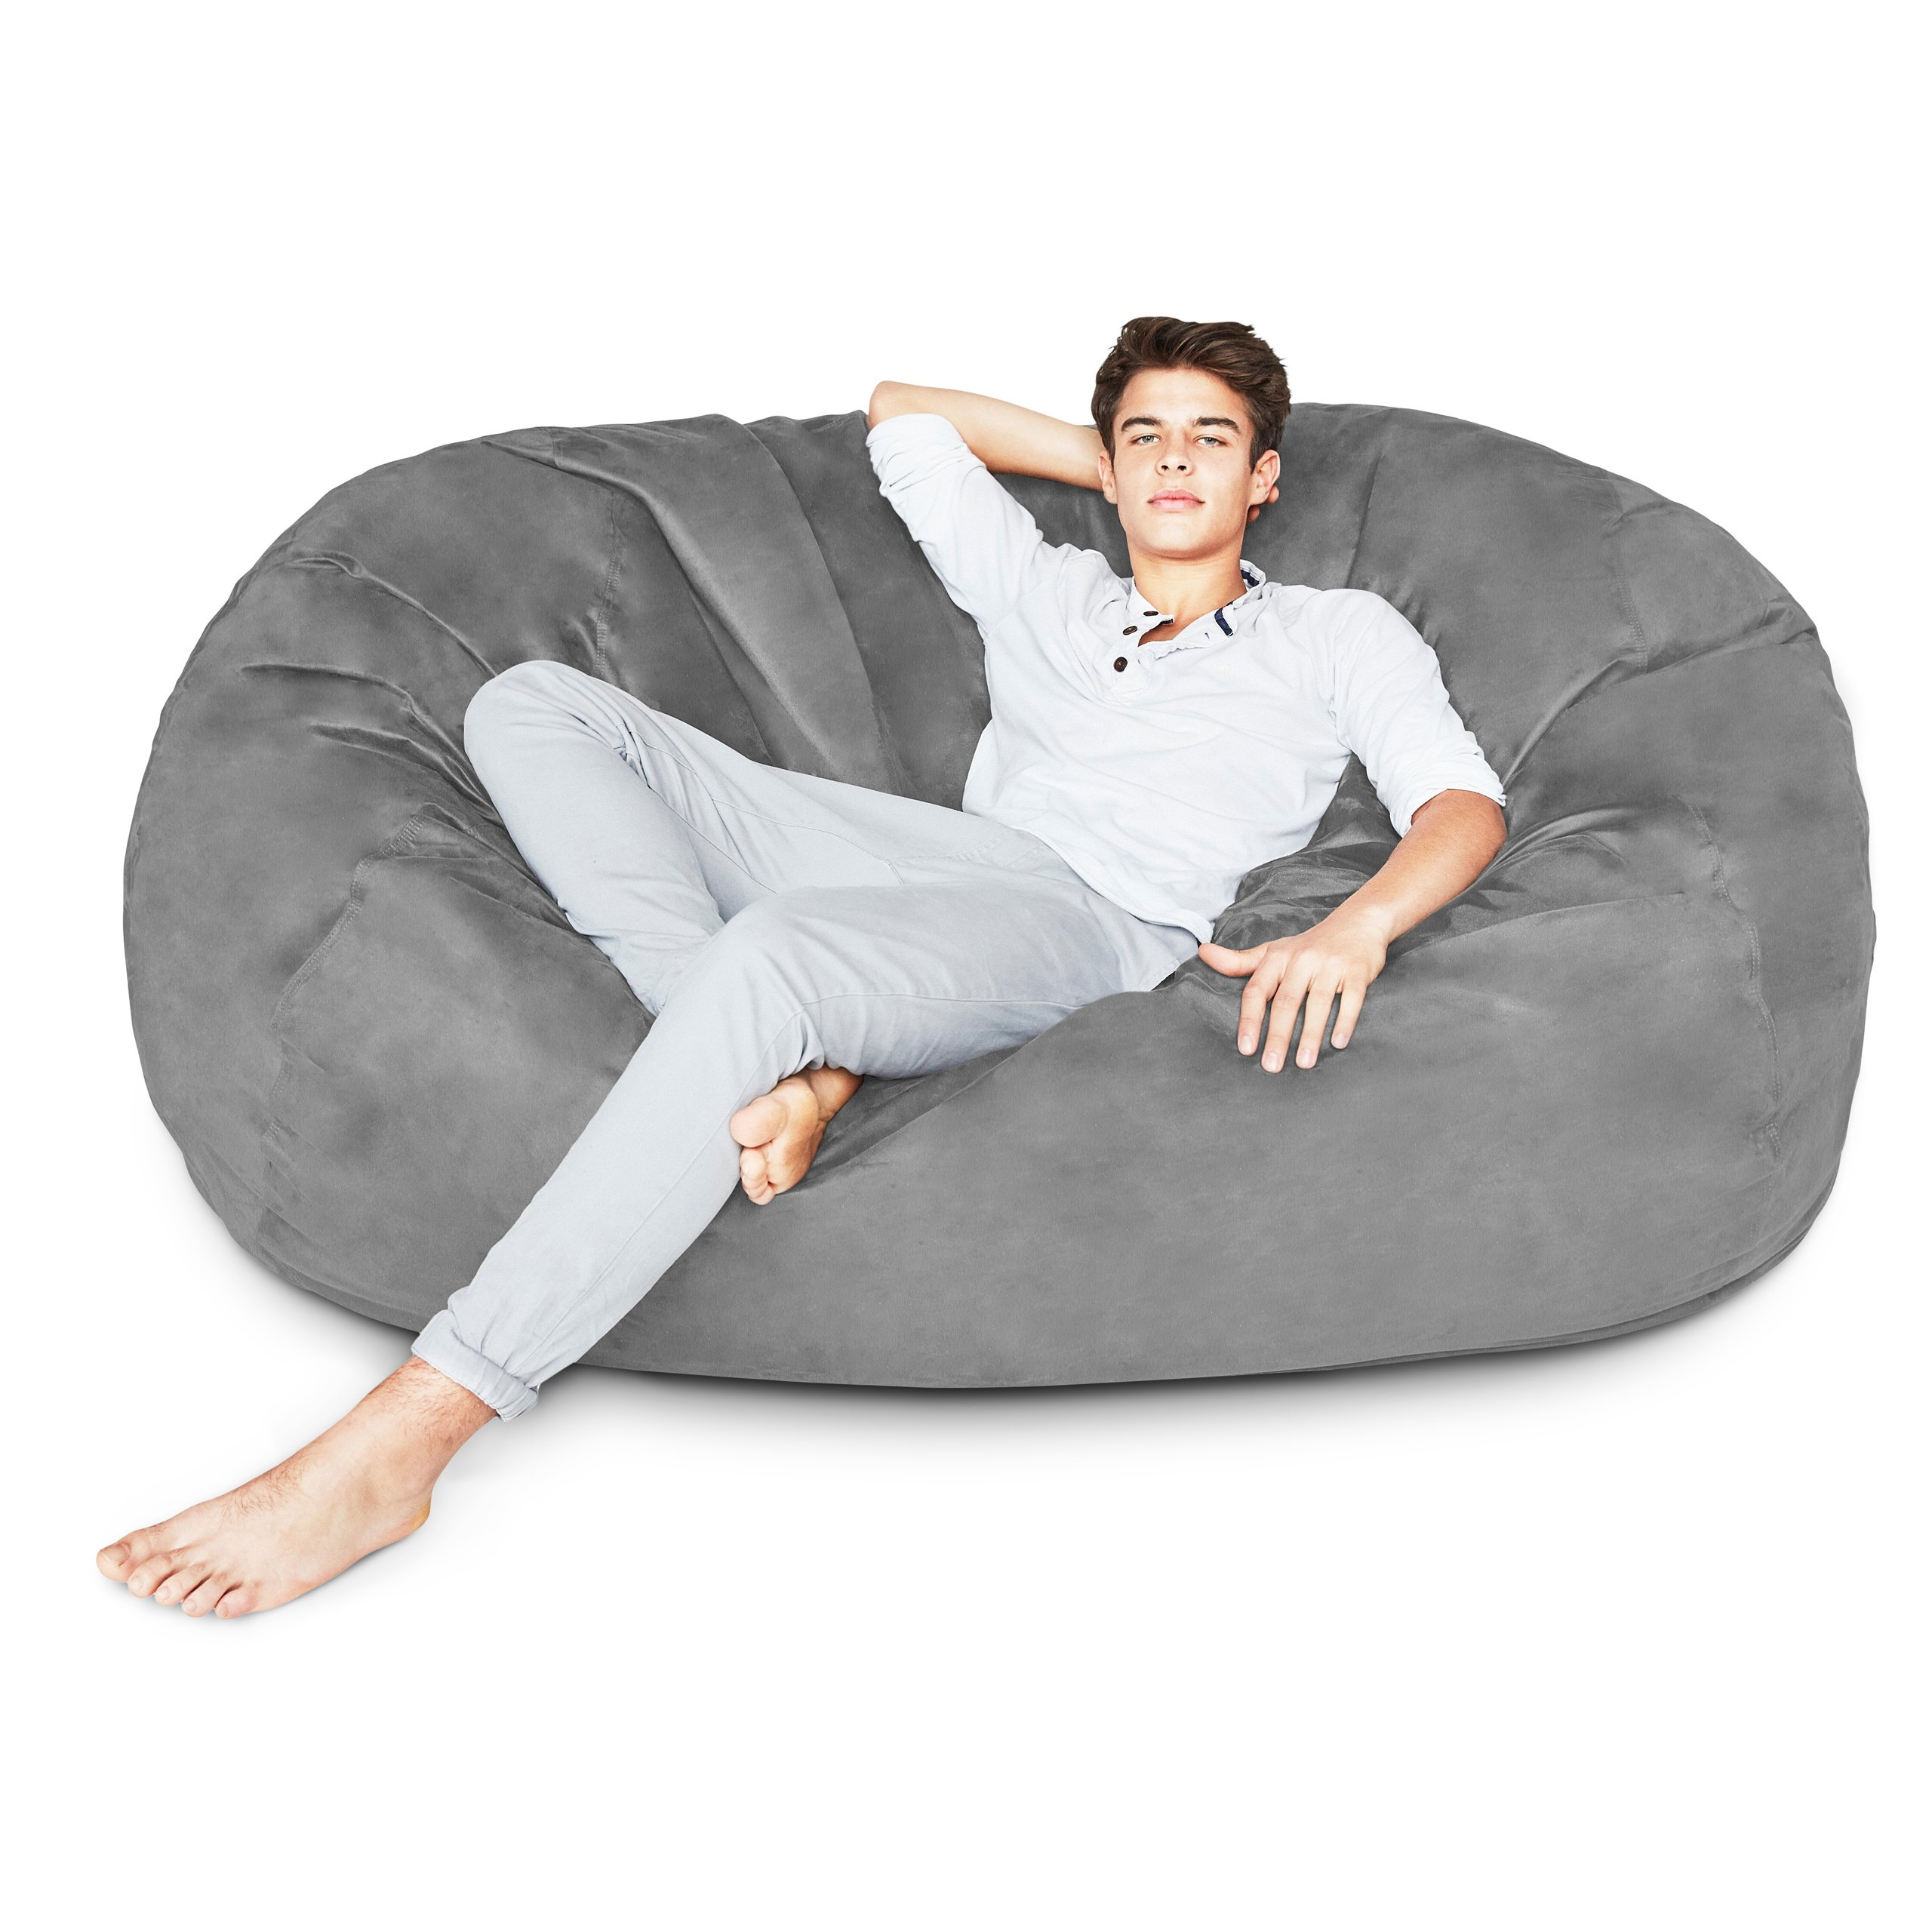 Lumaland Luxury 6-Foot Bean Bag Chair with Microsuede Cover Dark Grey, Machine Washable Big Size Sofa and Giant Lounger Furniture for Kids, Teens and Adults by Lumaland